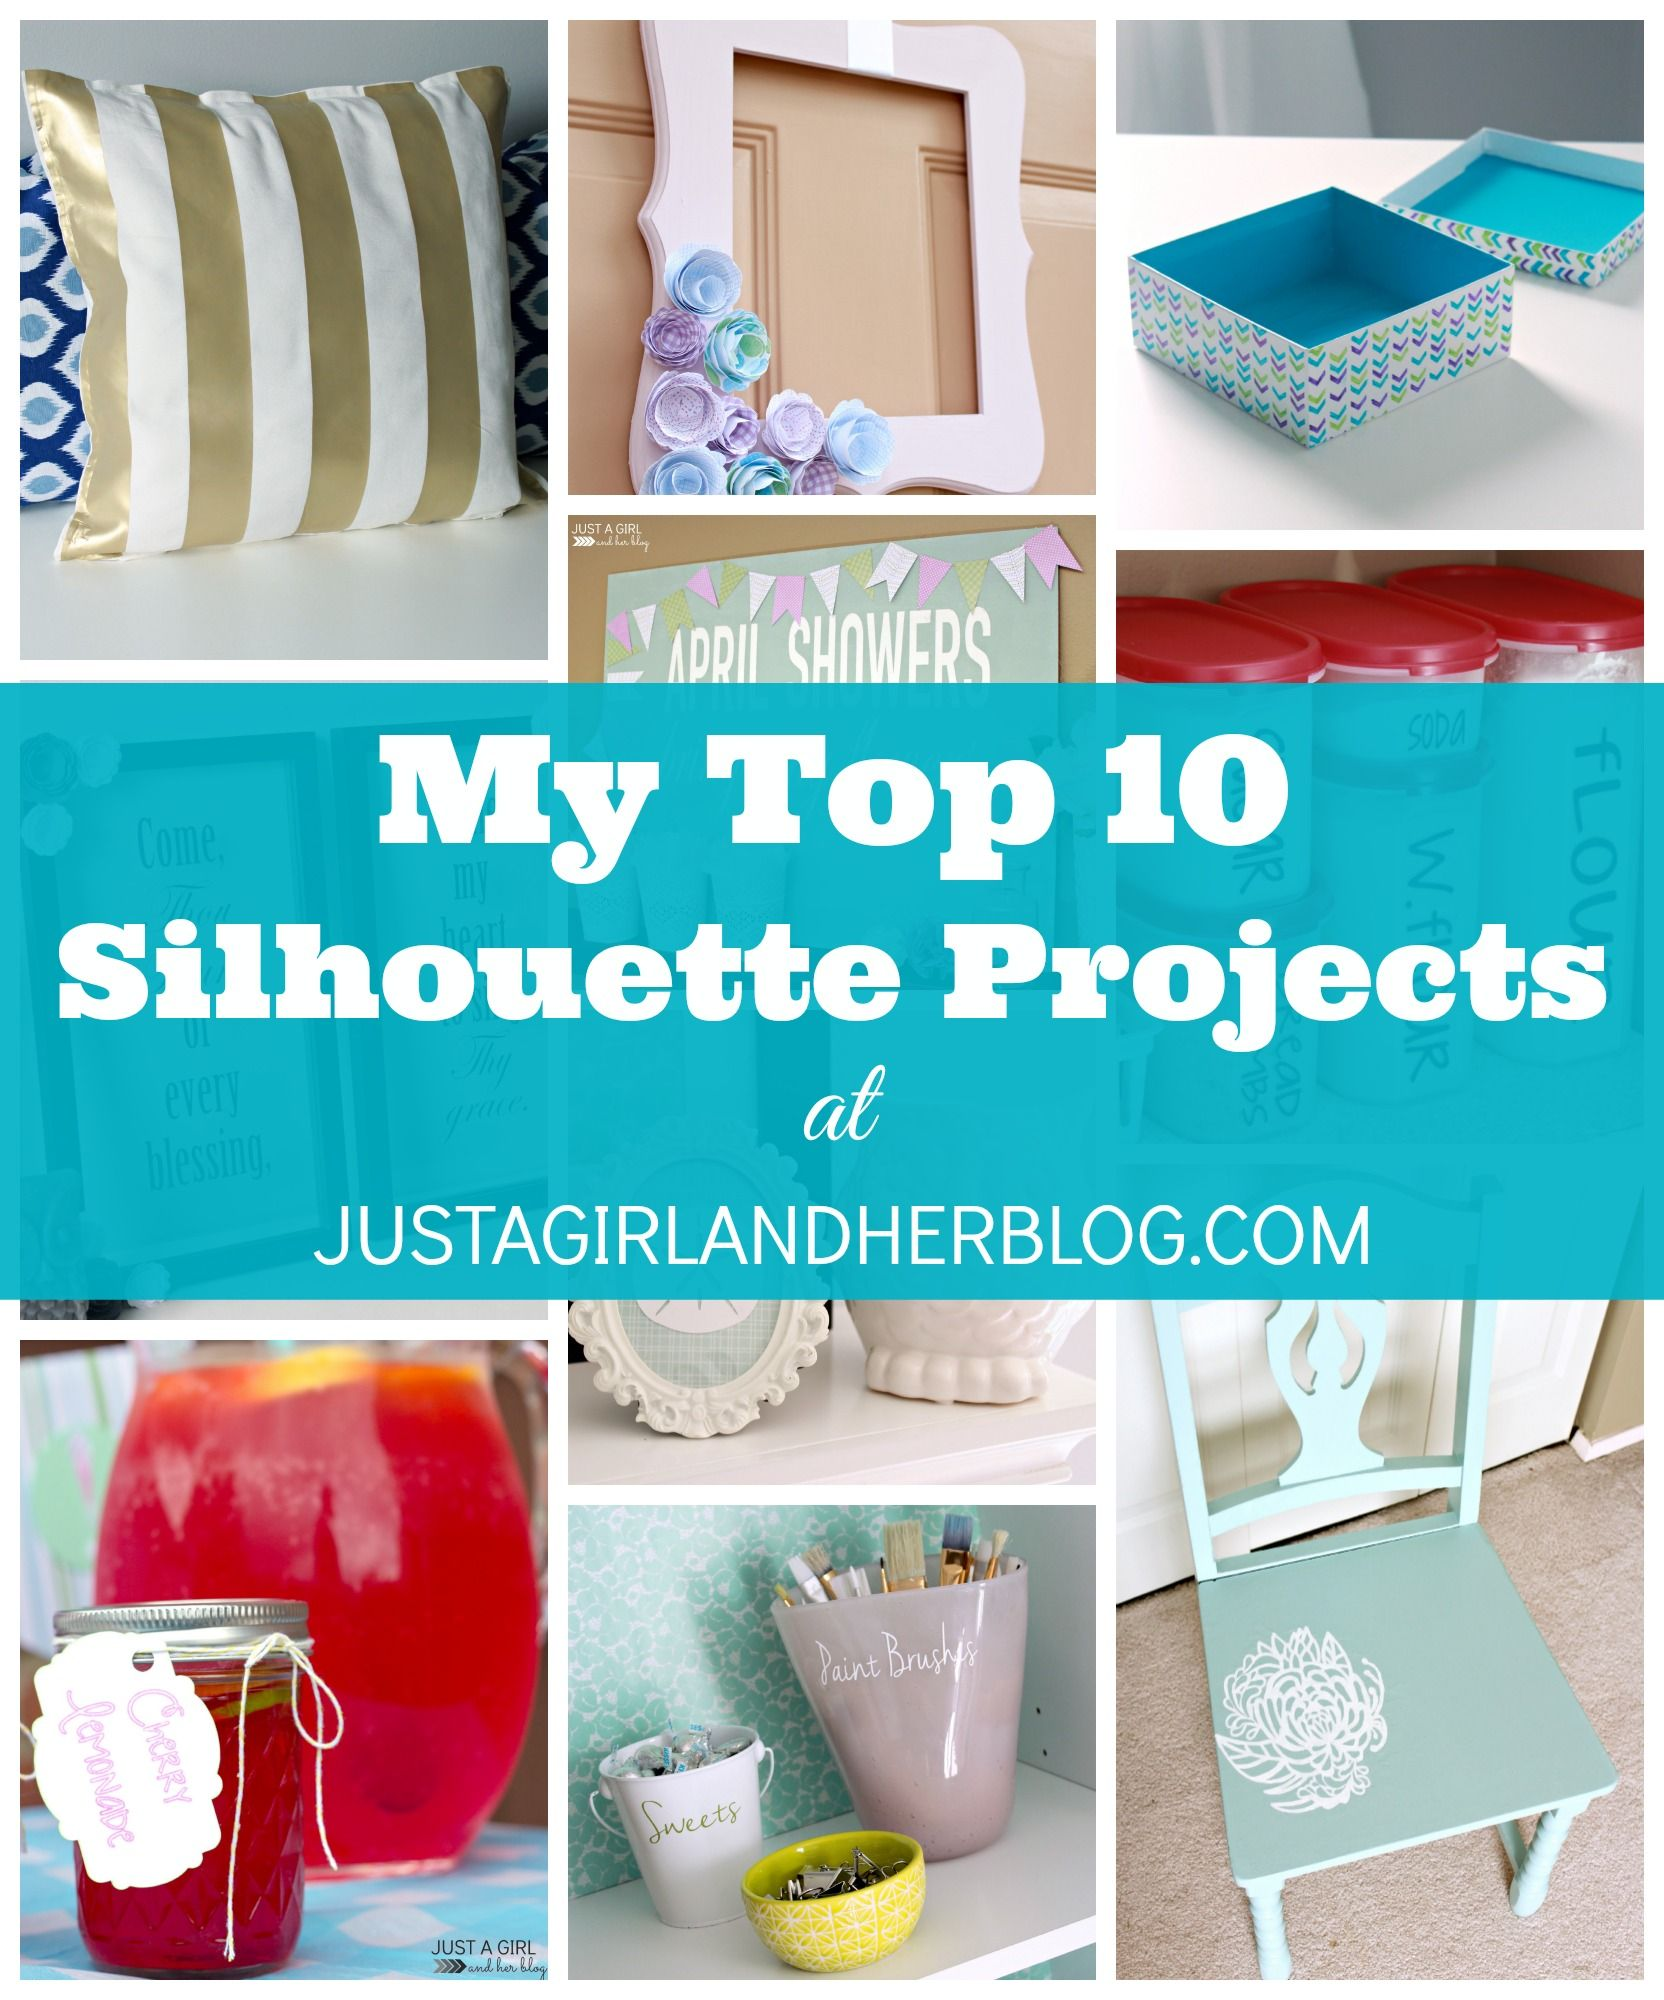 picture regarding Justagirlandherblog named My Best 10 Silhouette Initiatives Silhouette Tasks